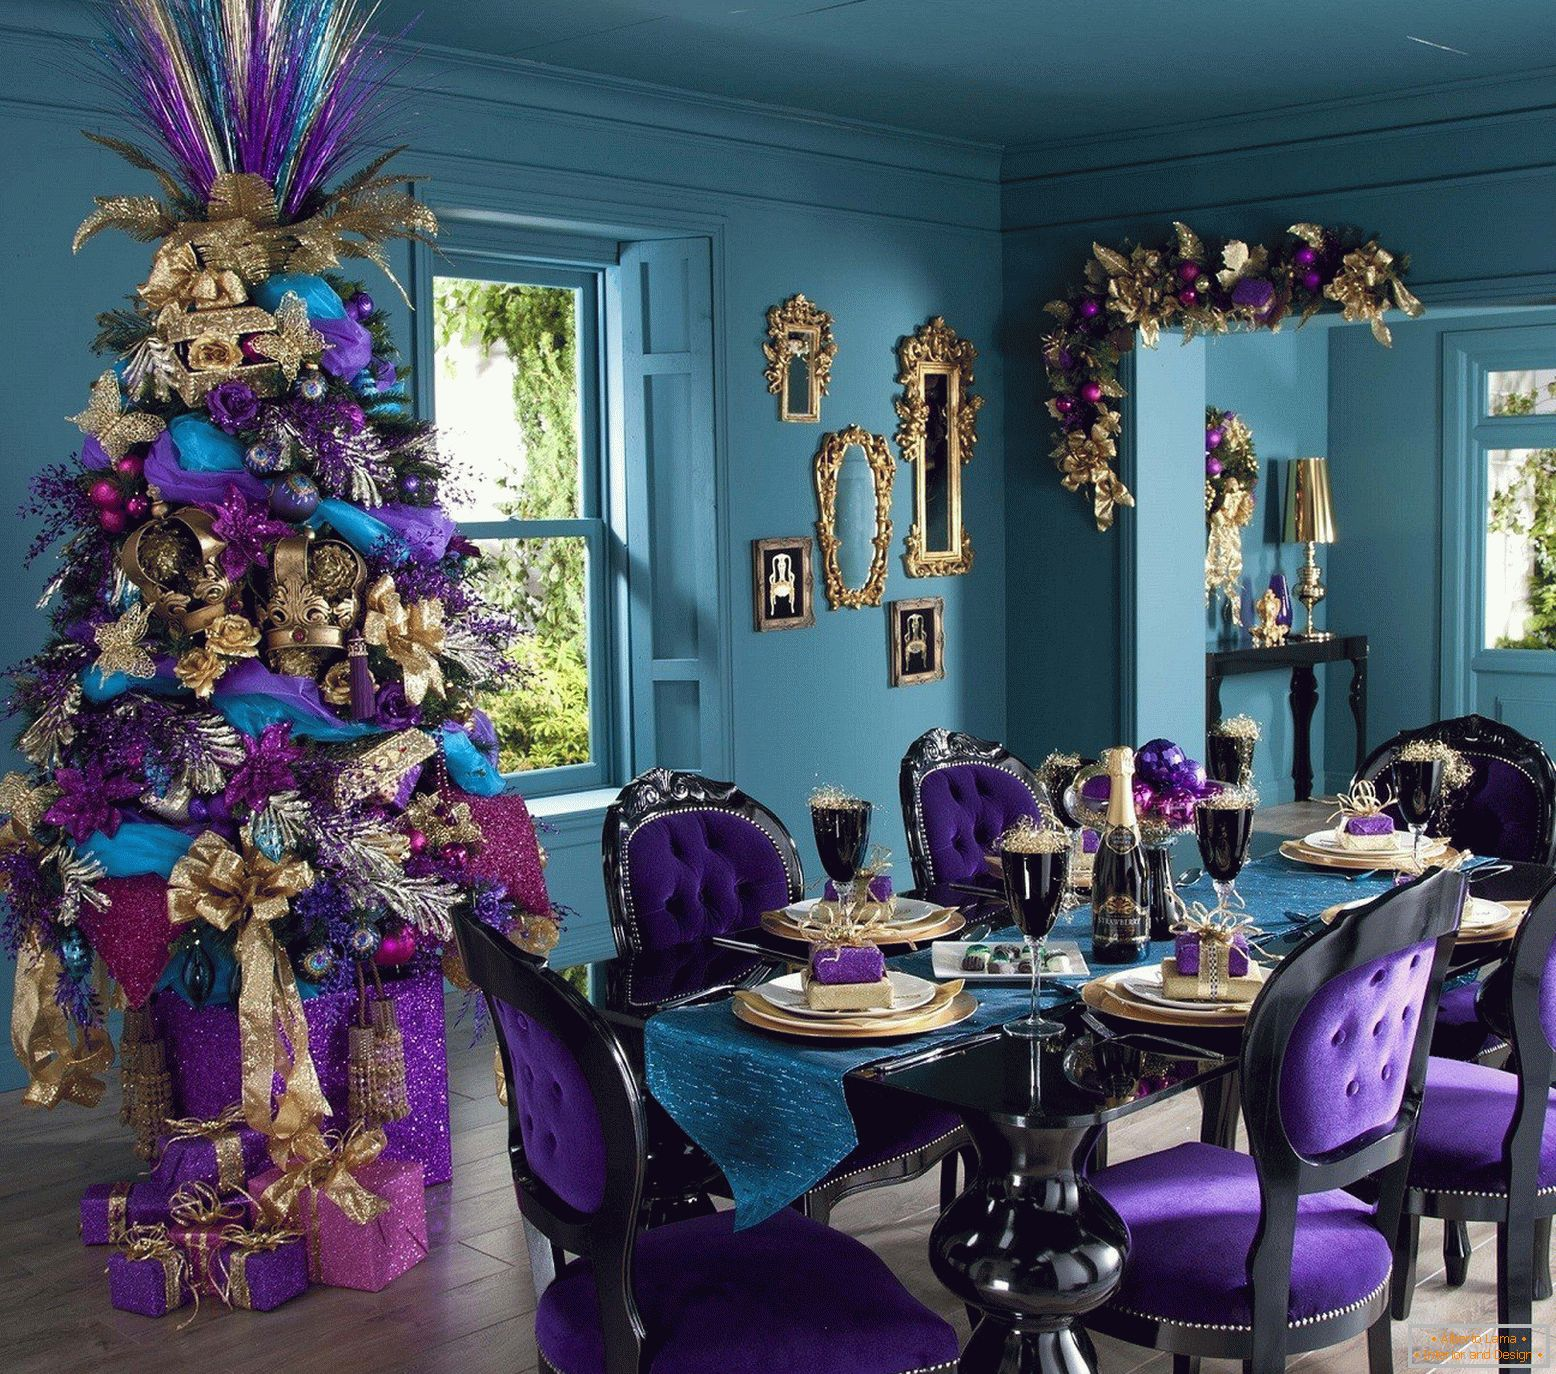 New Year's room in lilac color